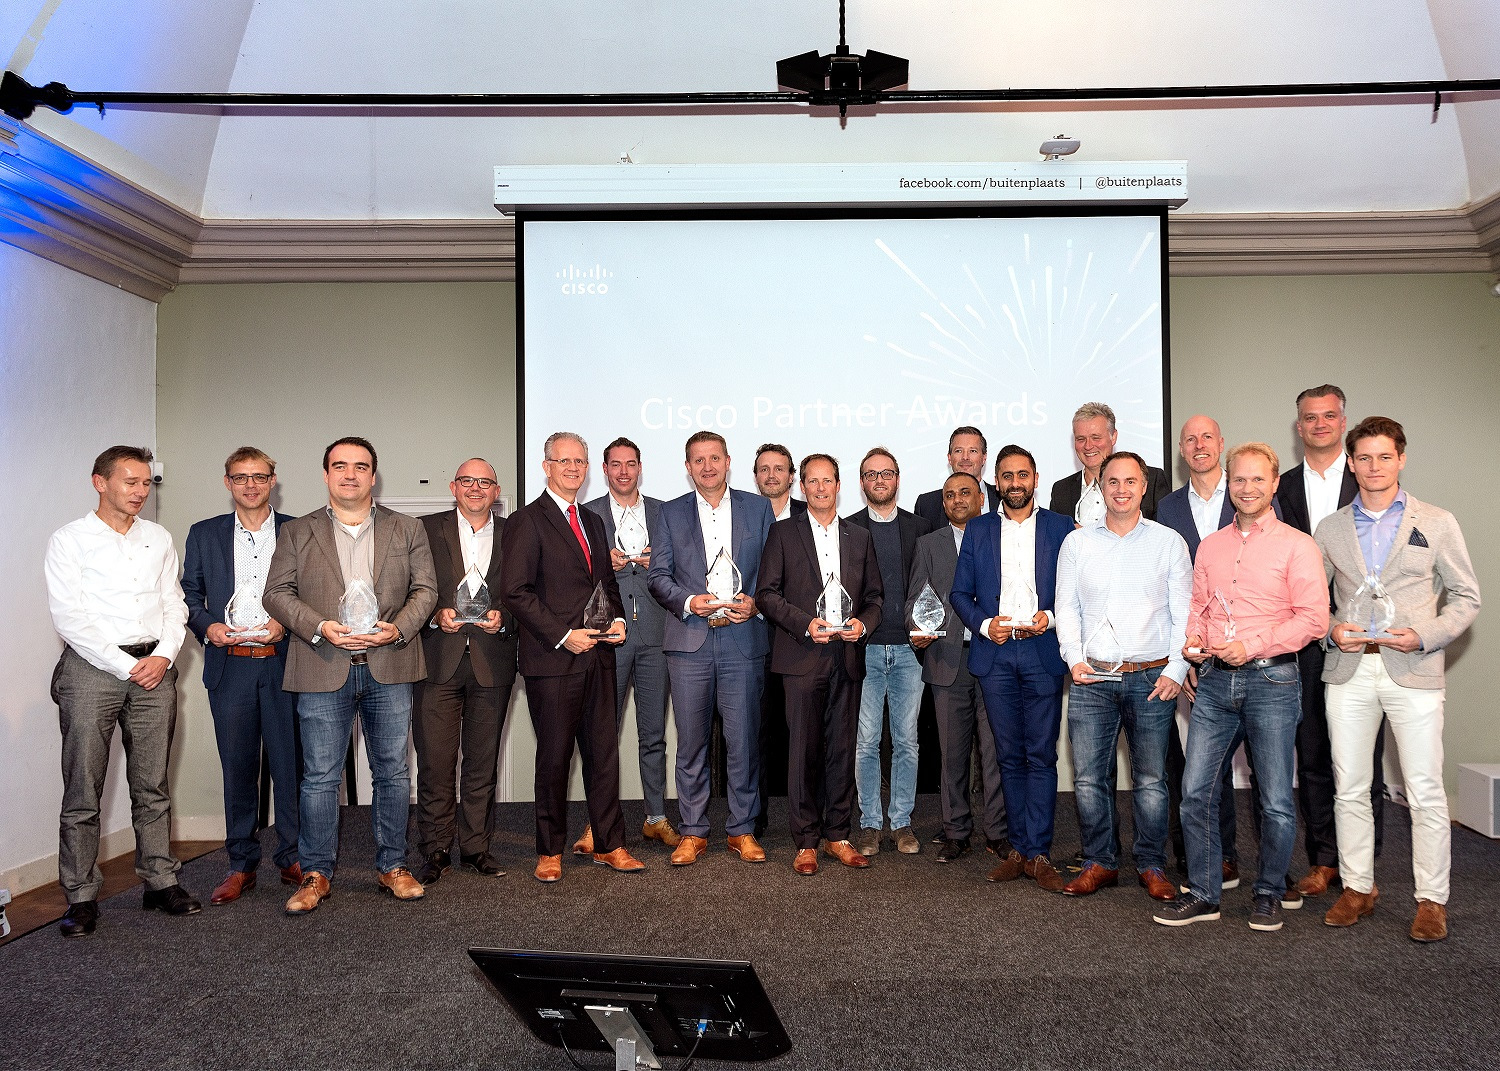 Winnaars Nederlandse Cisco Partner Awards 2018 bekend